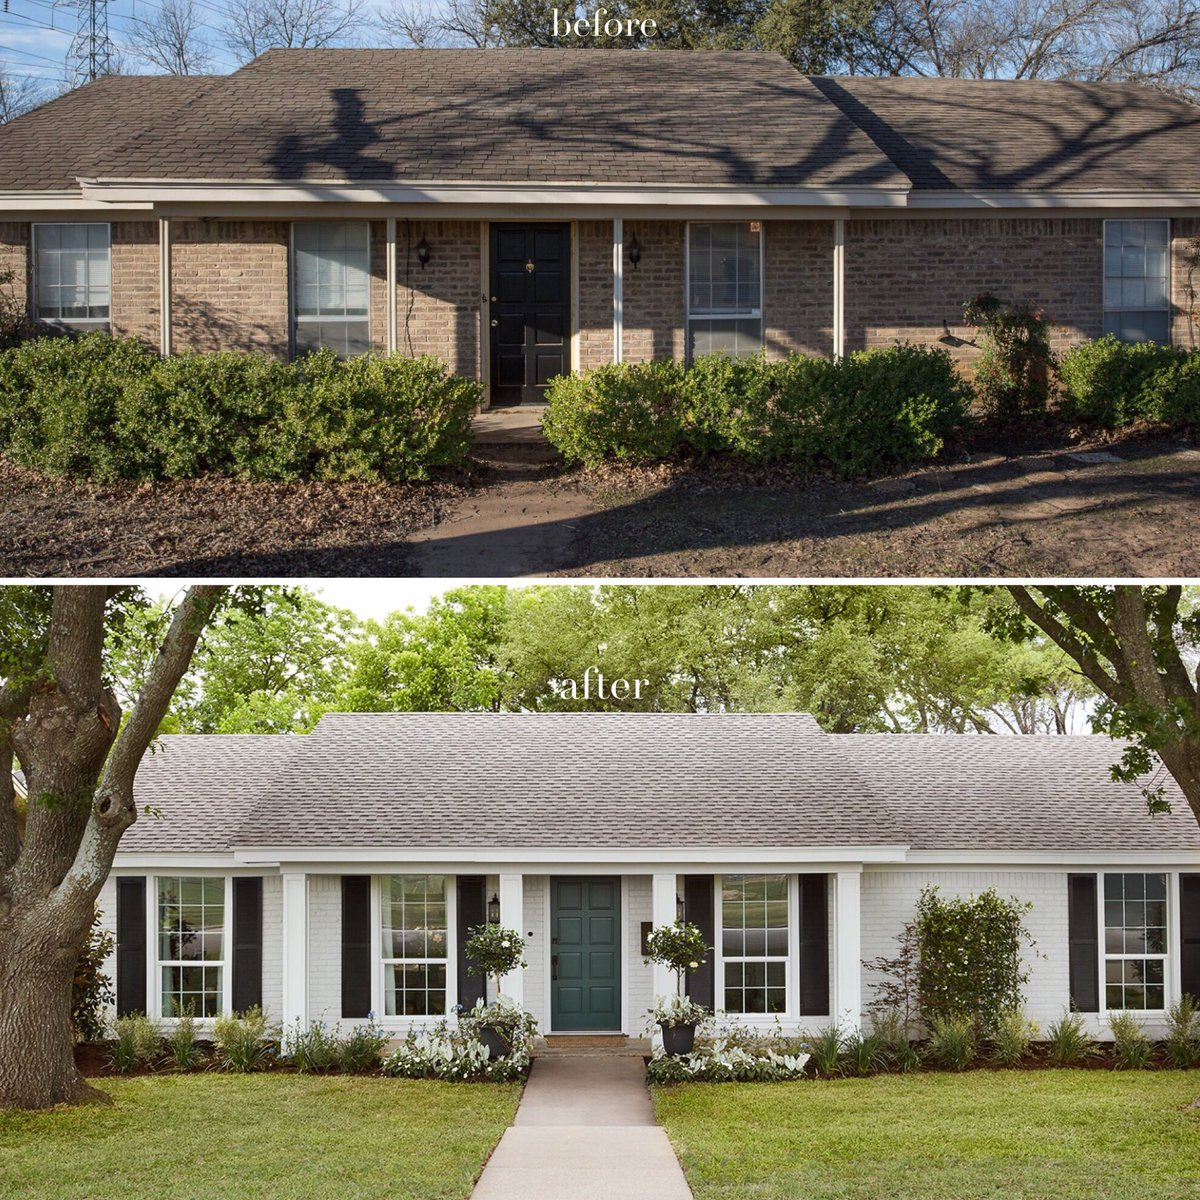 A house on the show 'Fixer Upper' (top) is renovated (bottom).